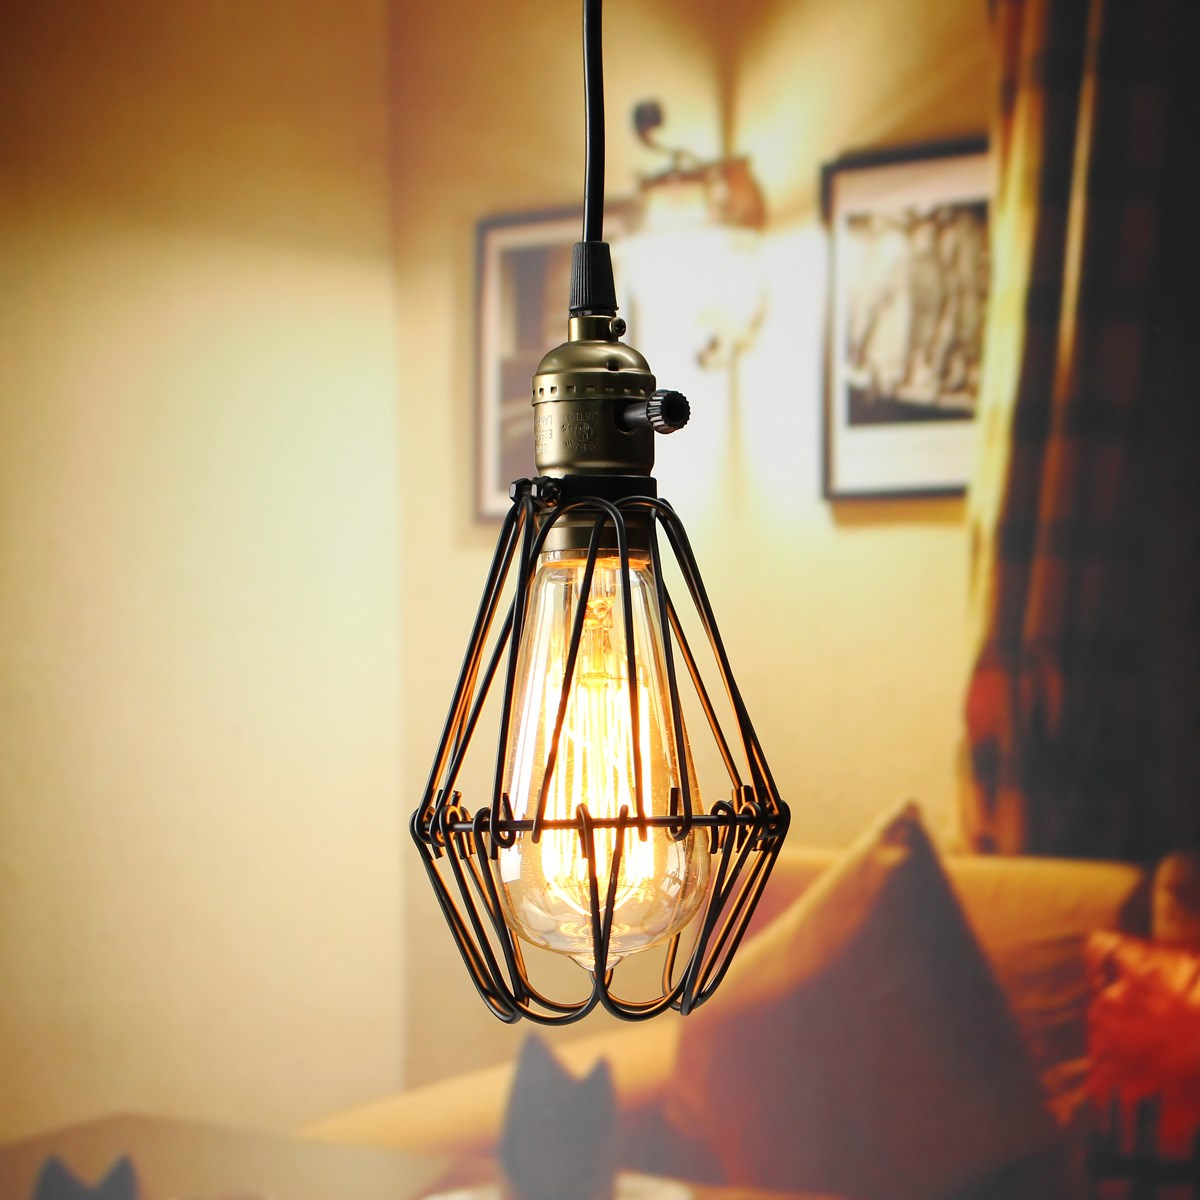 Wall Pendant Light: Hot Sale E27 40W ST64 Loft Metal Retro Industrial Pendant